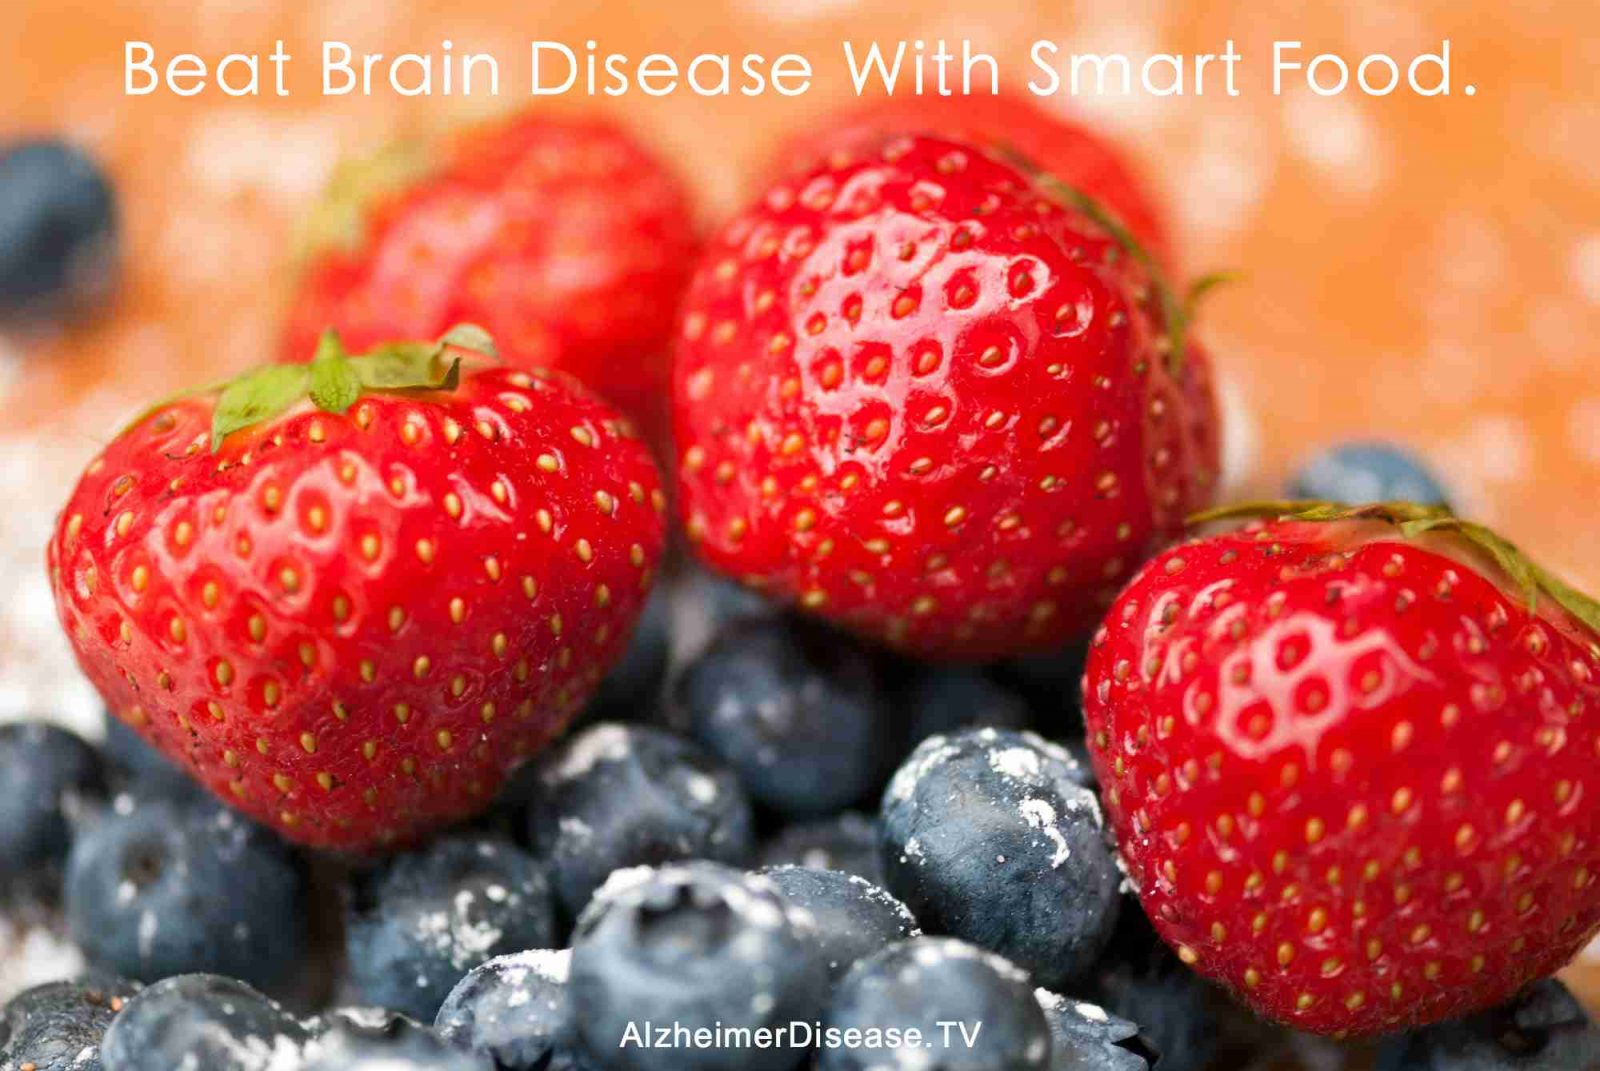 Beat Alzheimer's Disease With Smart Nutrition